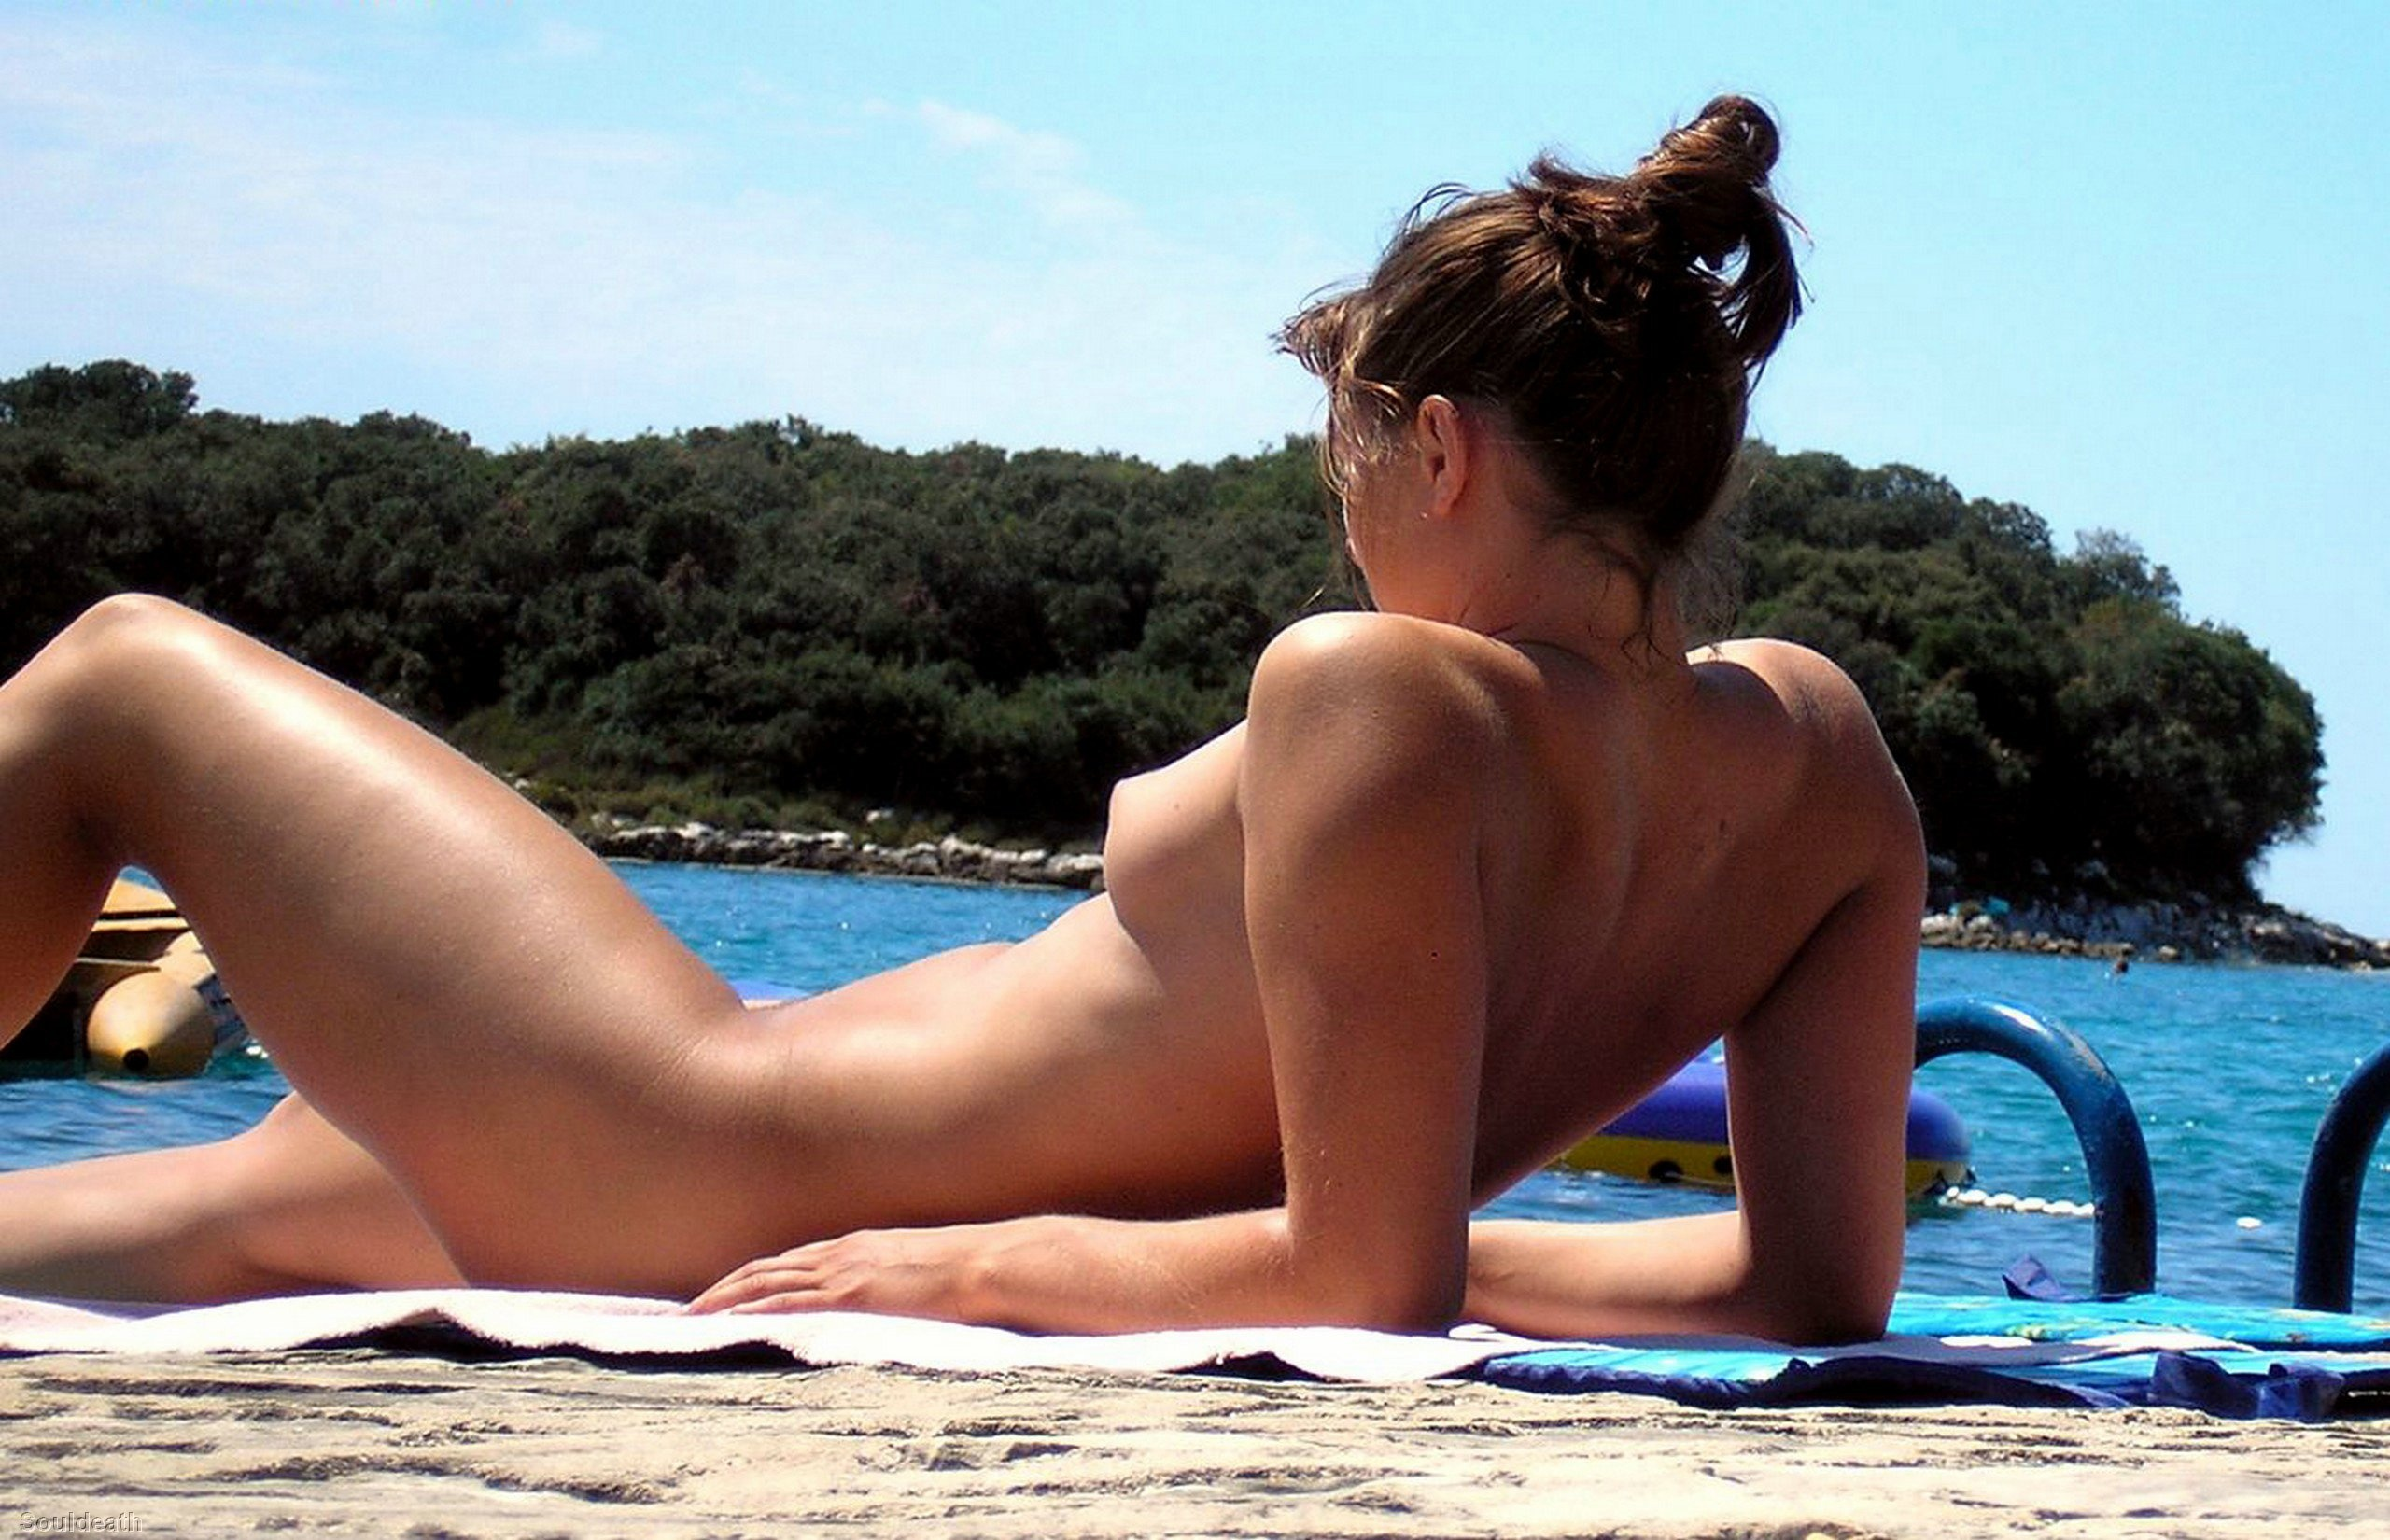 Pics of nude beach babes